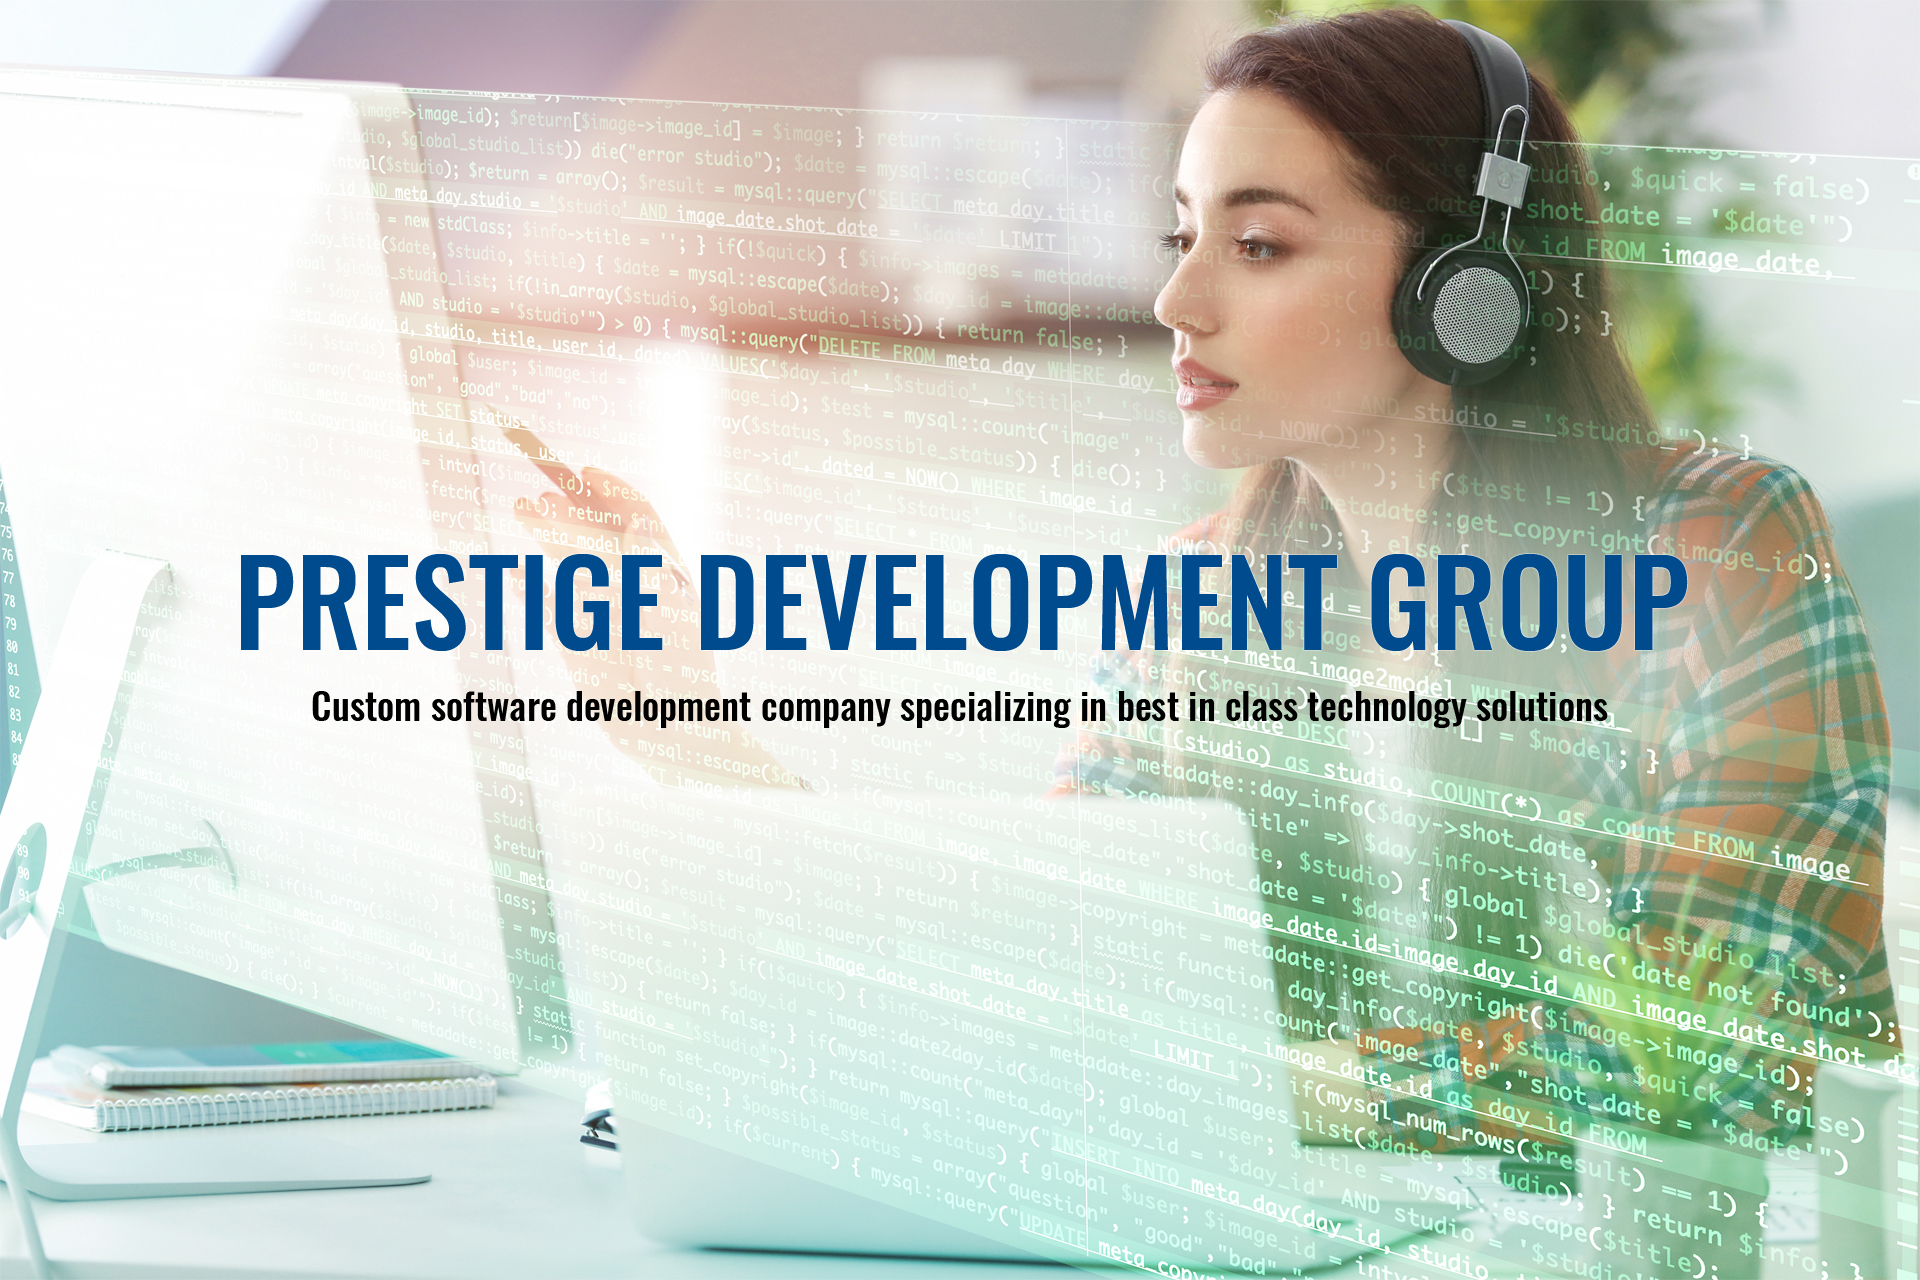 prestige development group